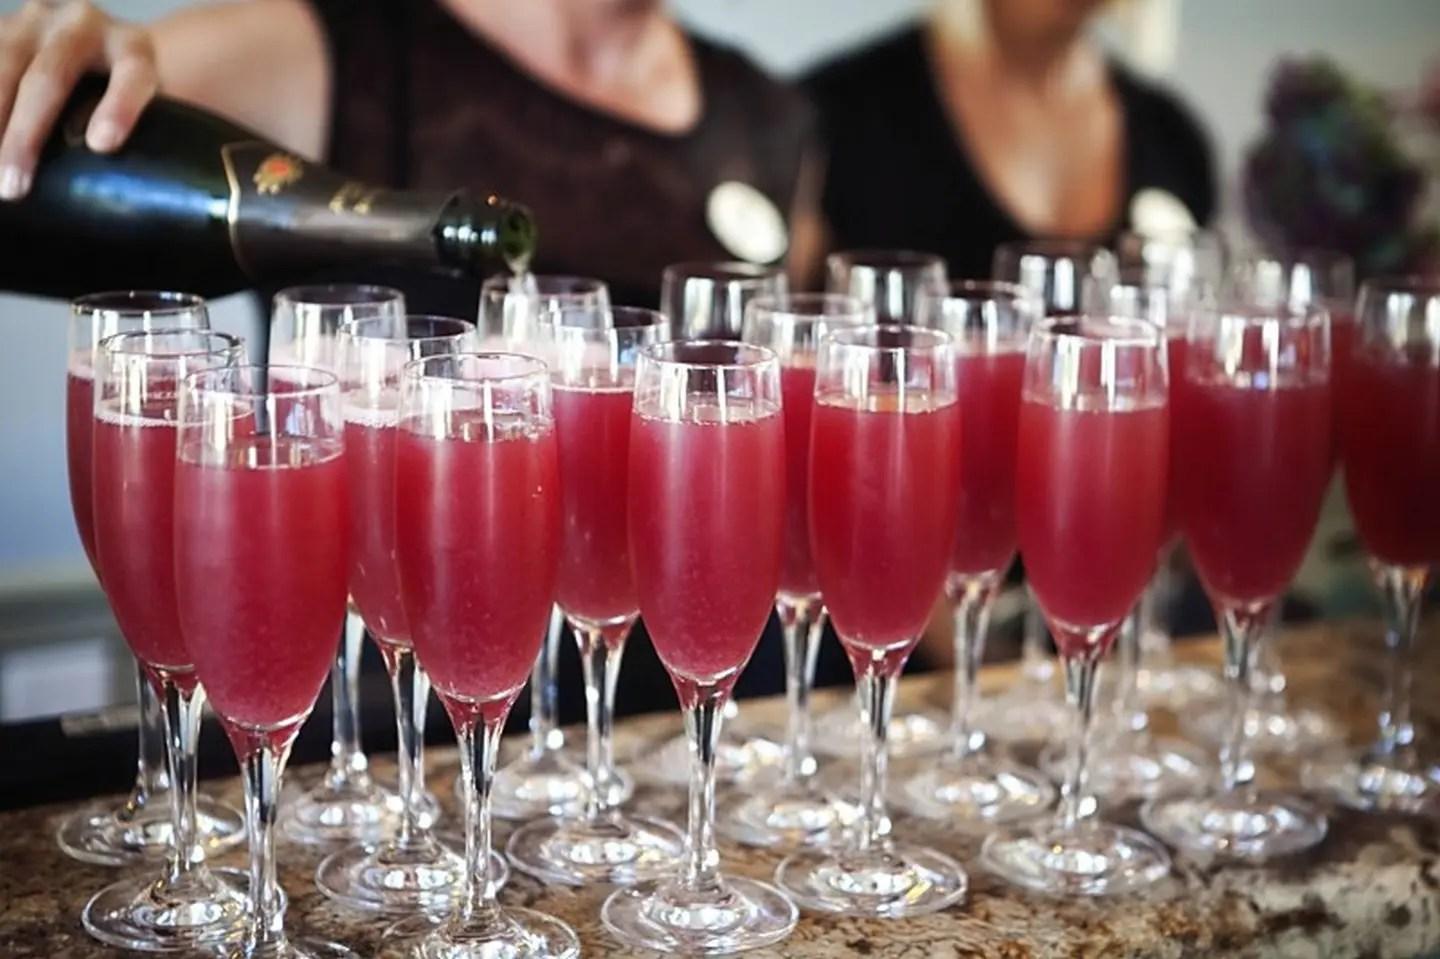 Champagne Cocktails for Weddings at AQUA Restaurant